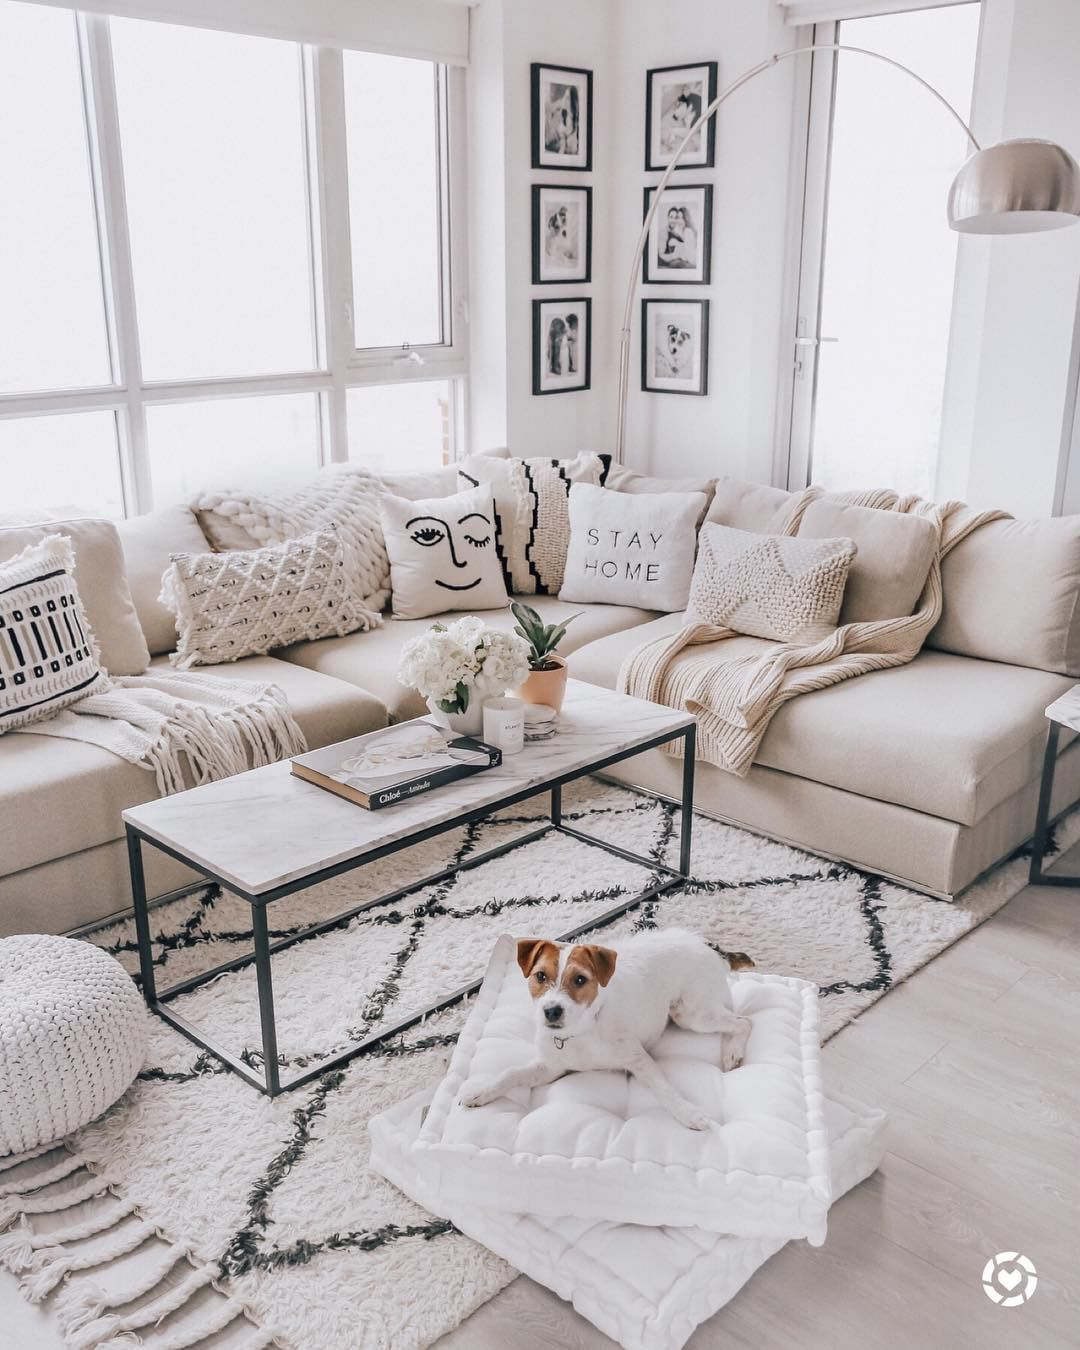 Life In Jeneral On Instagram Monochromatic Details Cozy Knits Make This Space A Perfect Location For A Friday Night In Home Decor Home Home Living Room